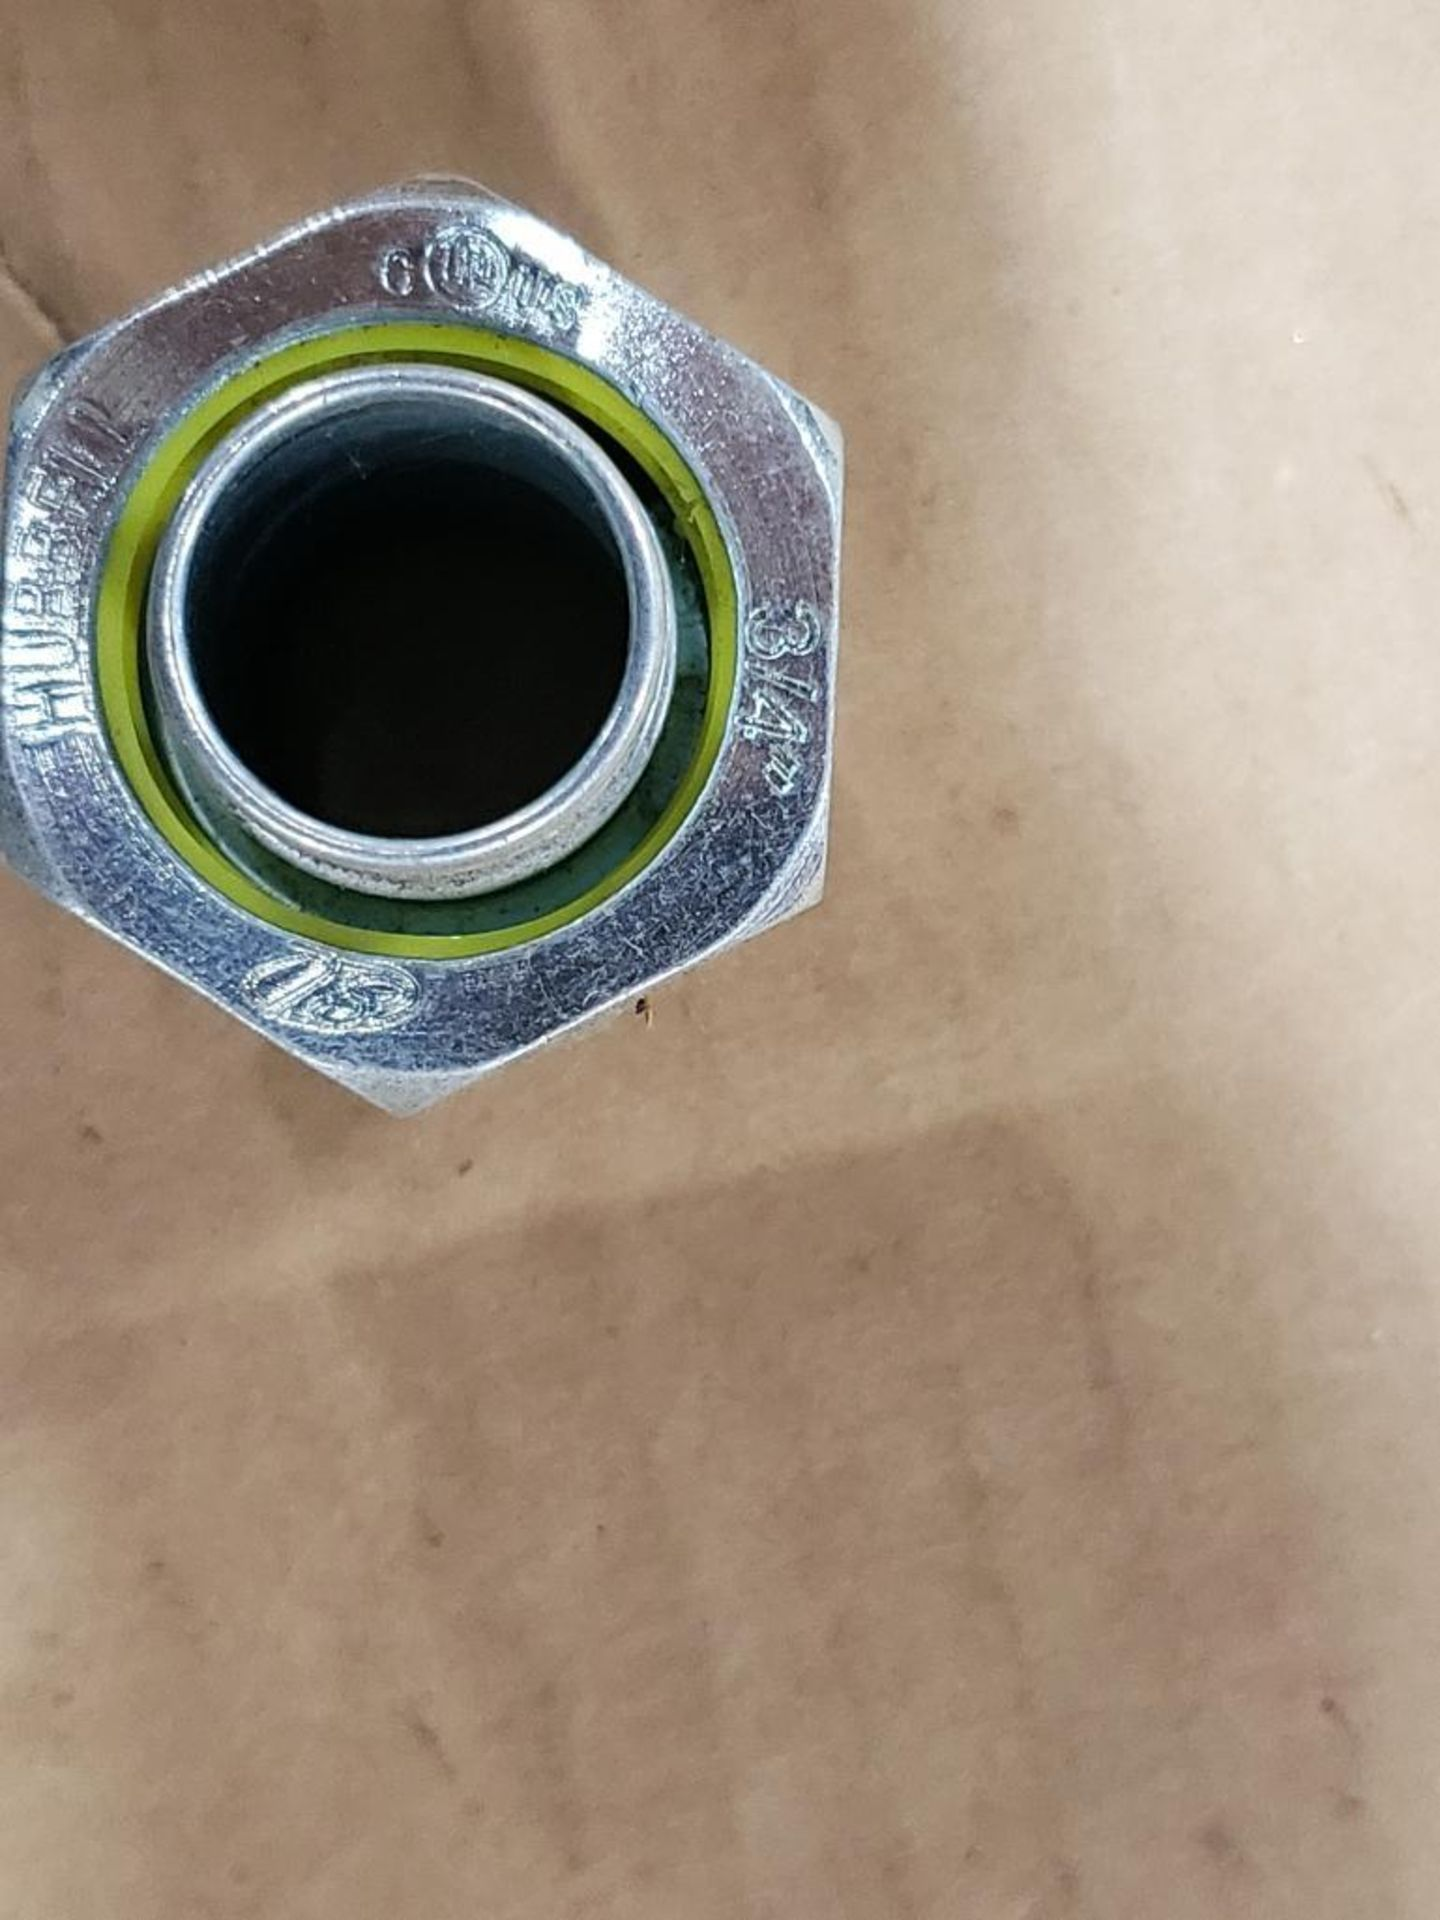 """Lg Qty of Hubbell Liquid Tight hose Fittings. 3/4"""" Elbows and straight fittings. - Image 5 of 6"""